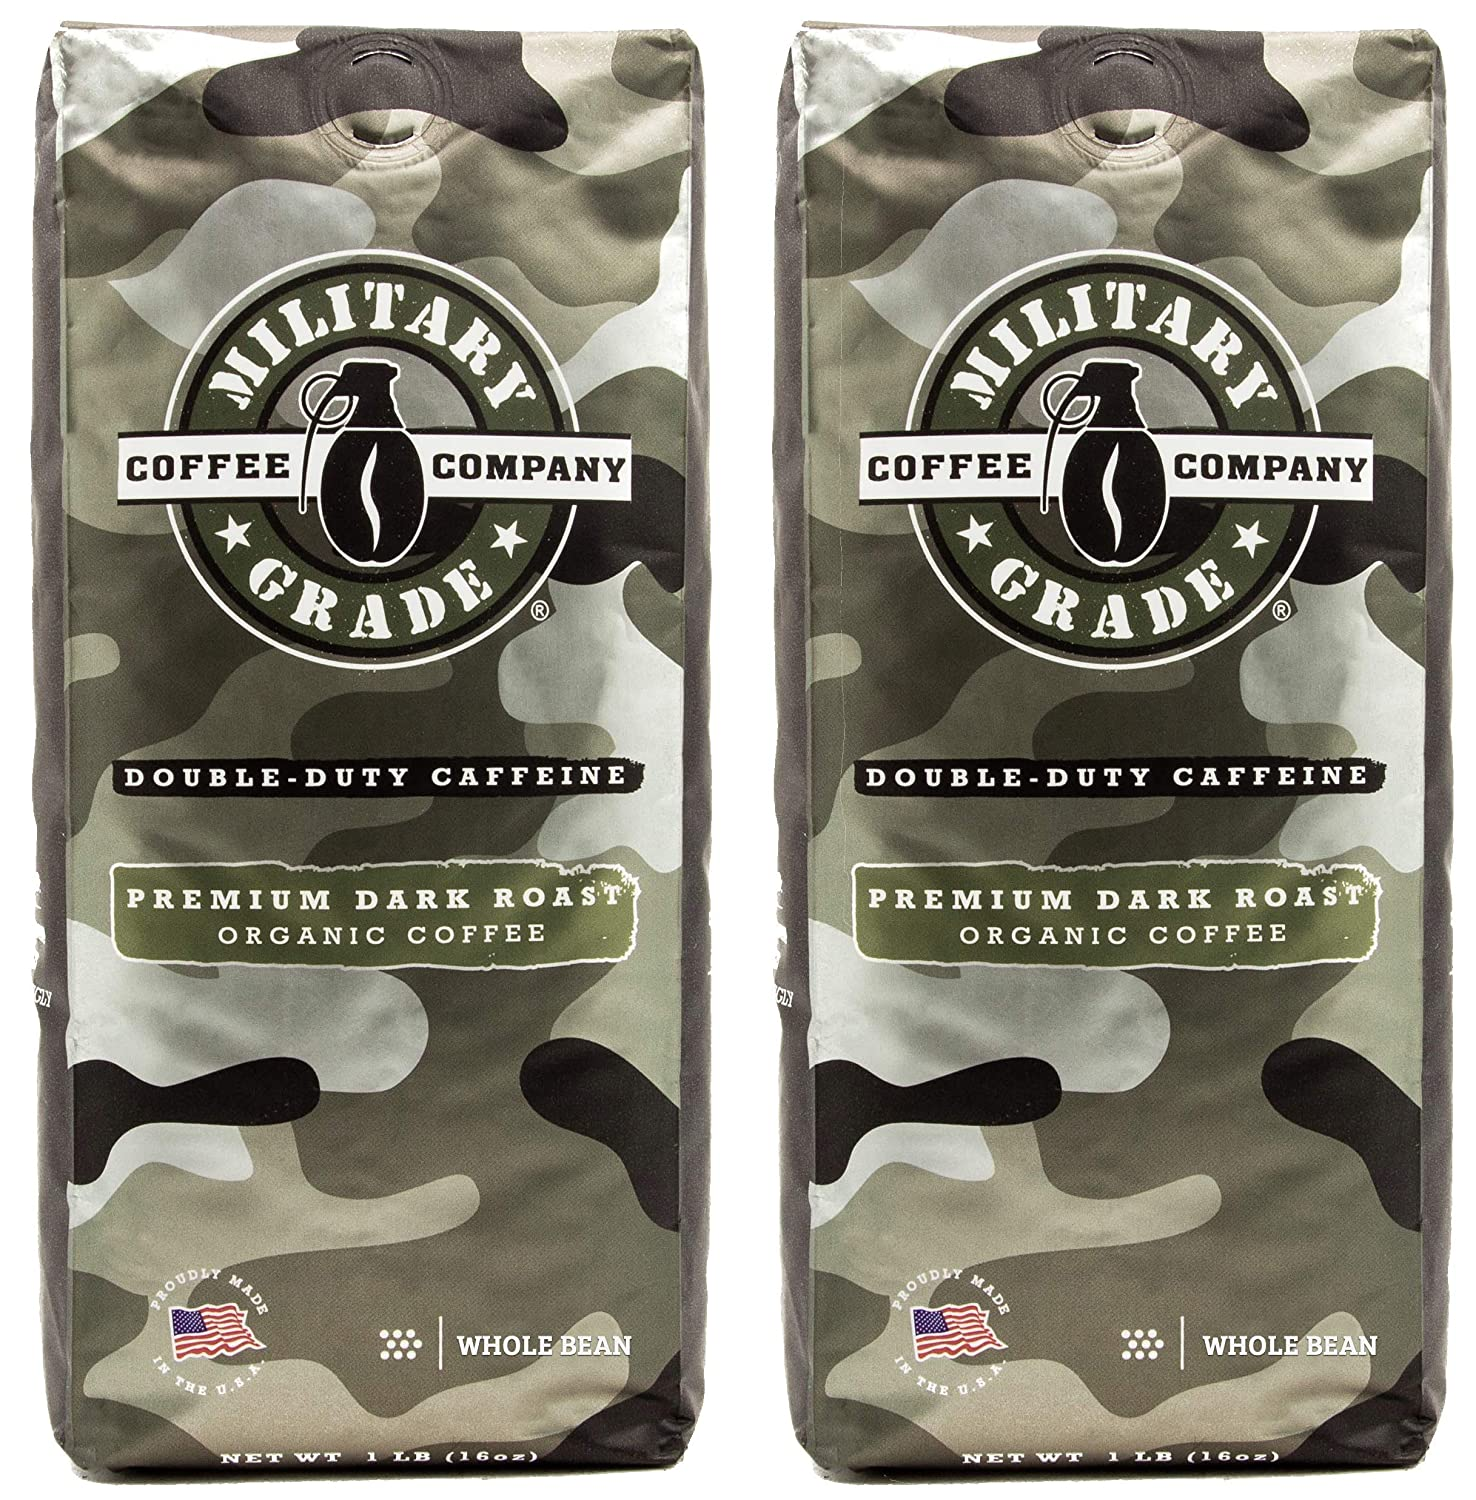 Military Grade Coffee Beans Review